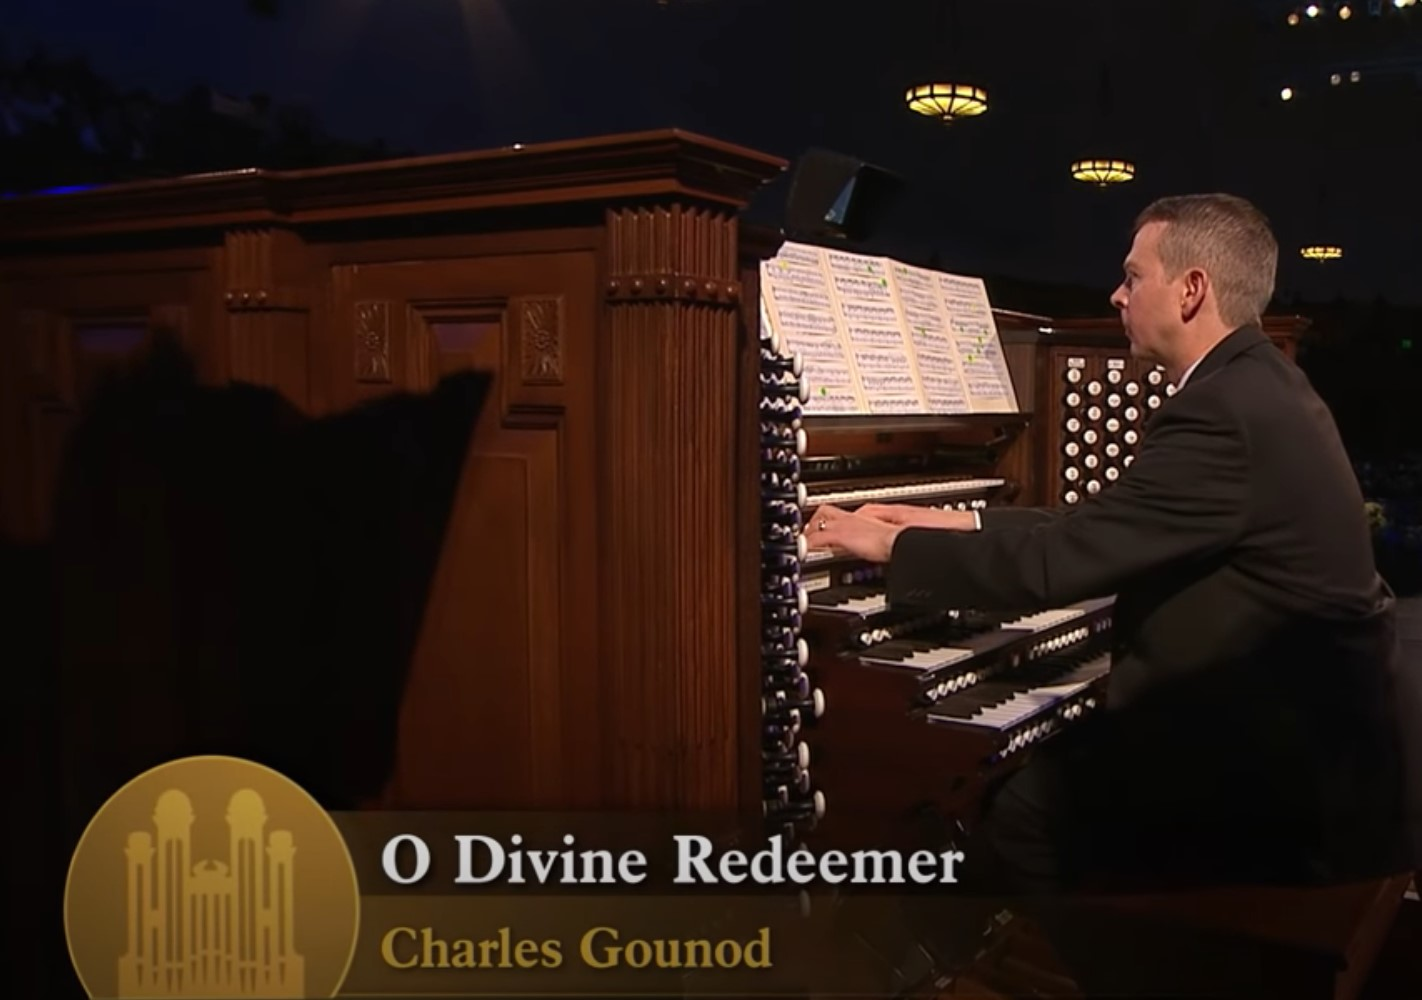 8. O Divine Redeemer - Mormon Tabernacle Choir